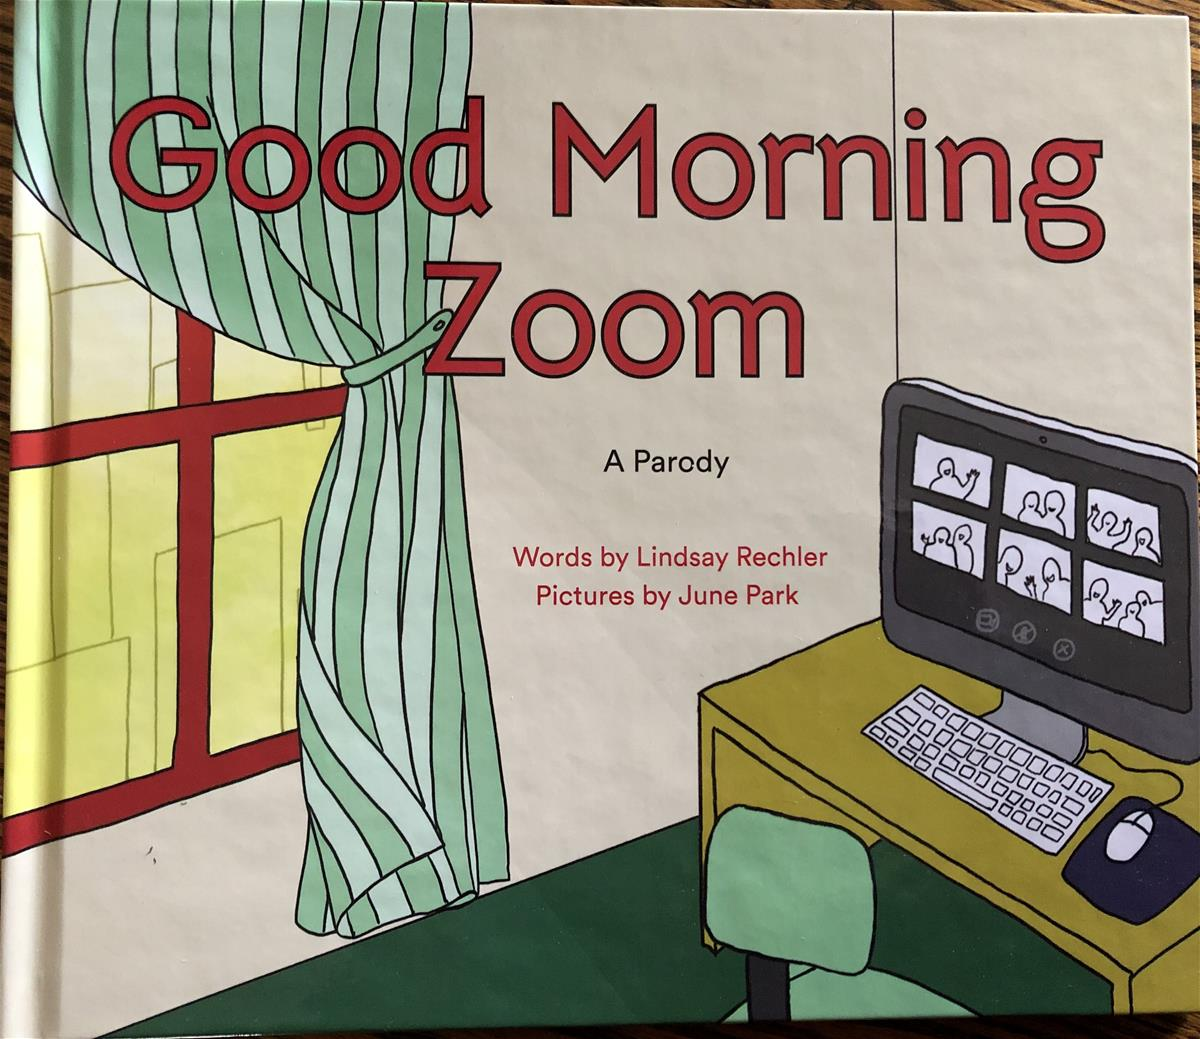 Book cover with image of room containing desk with computer screen with multiple boxes containing silhouettes; also contains text